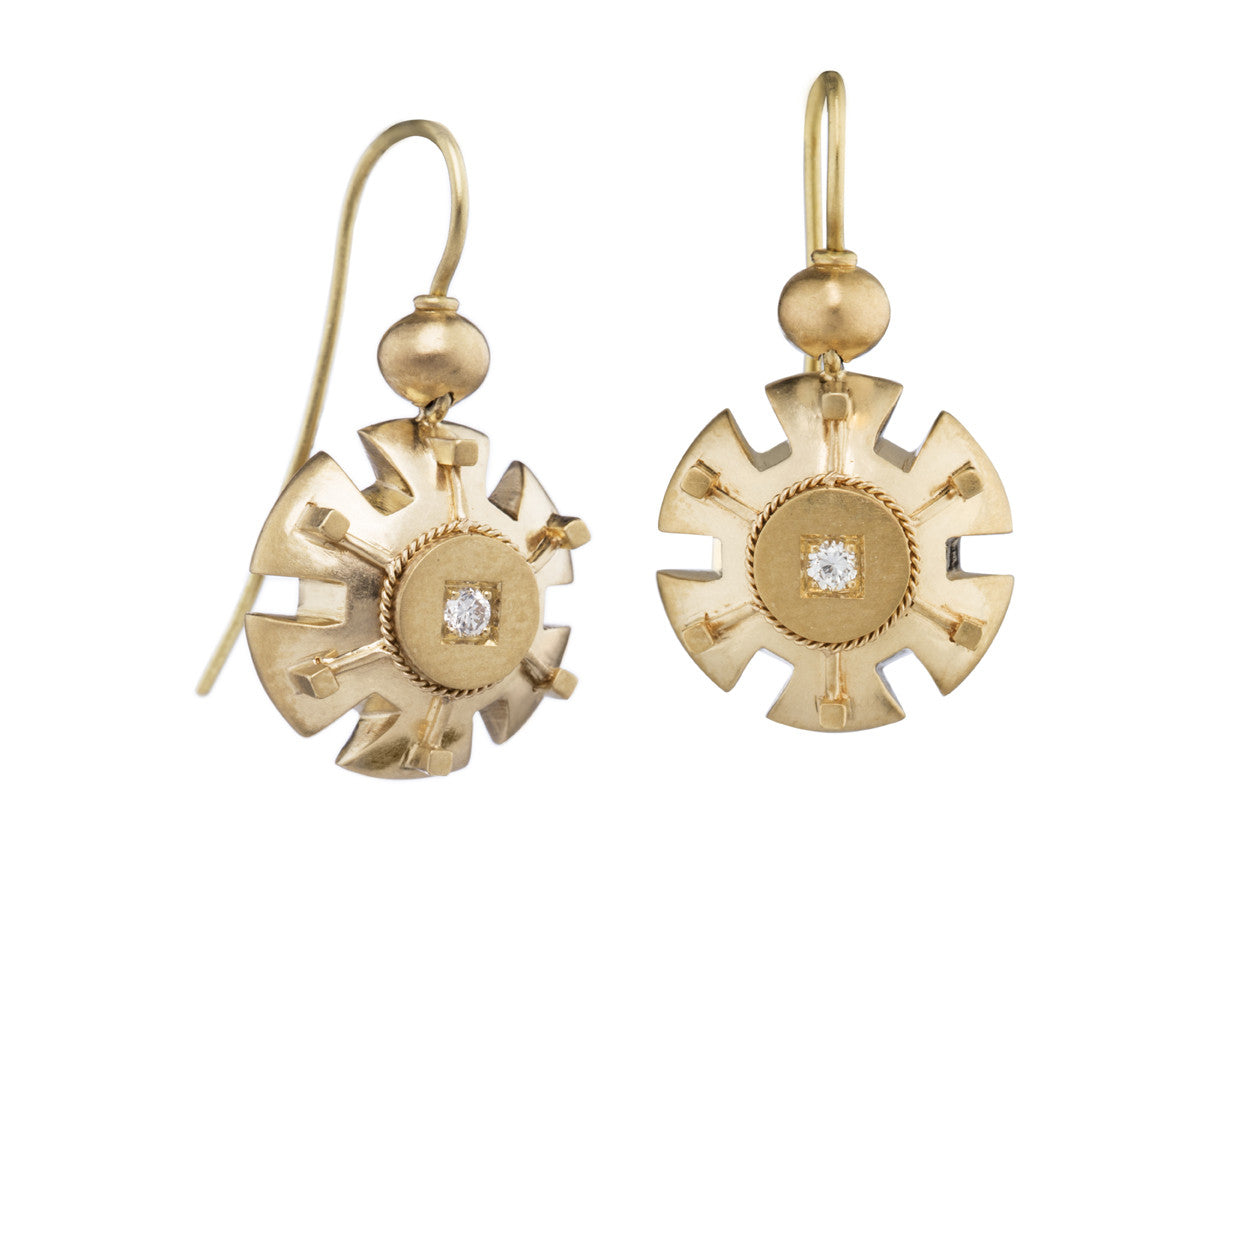 'Minerva' Etruscan Earrings in 18k yellow gold and diamond.